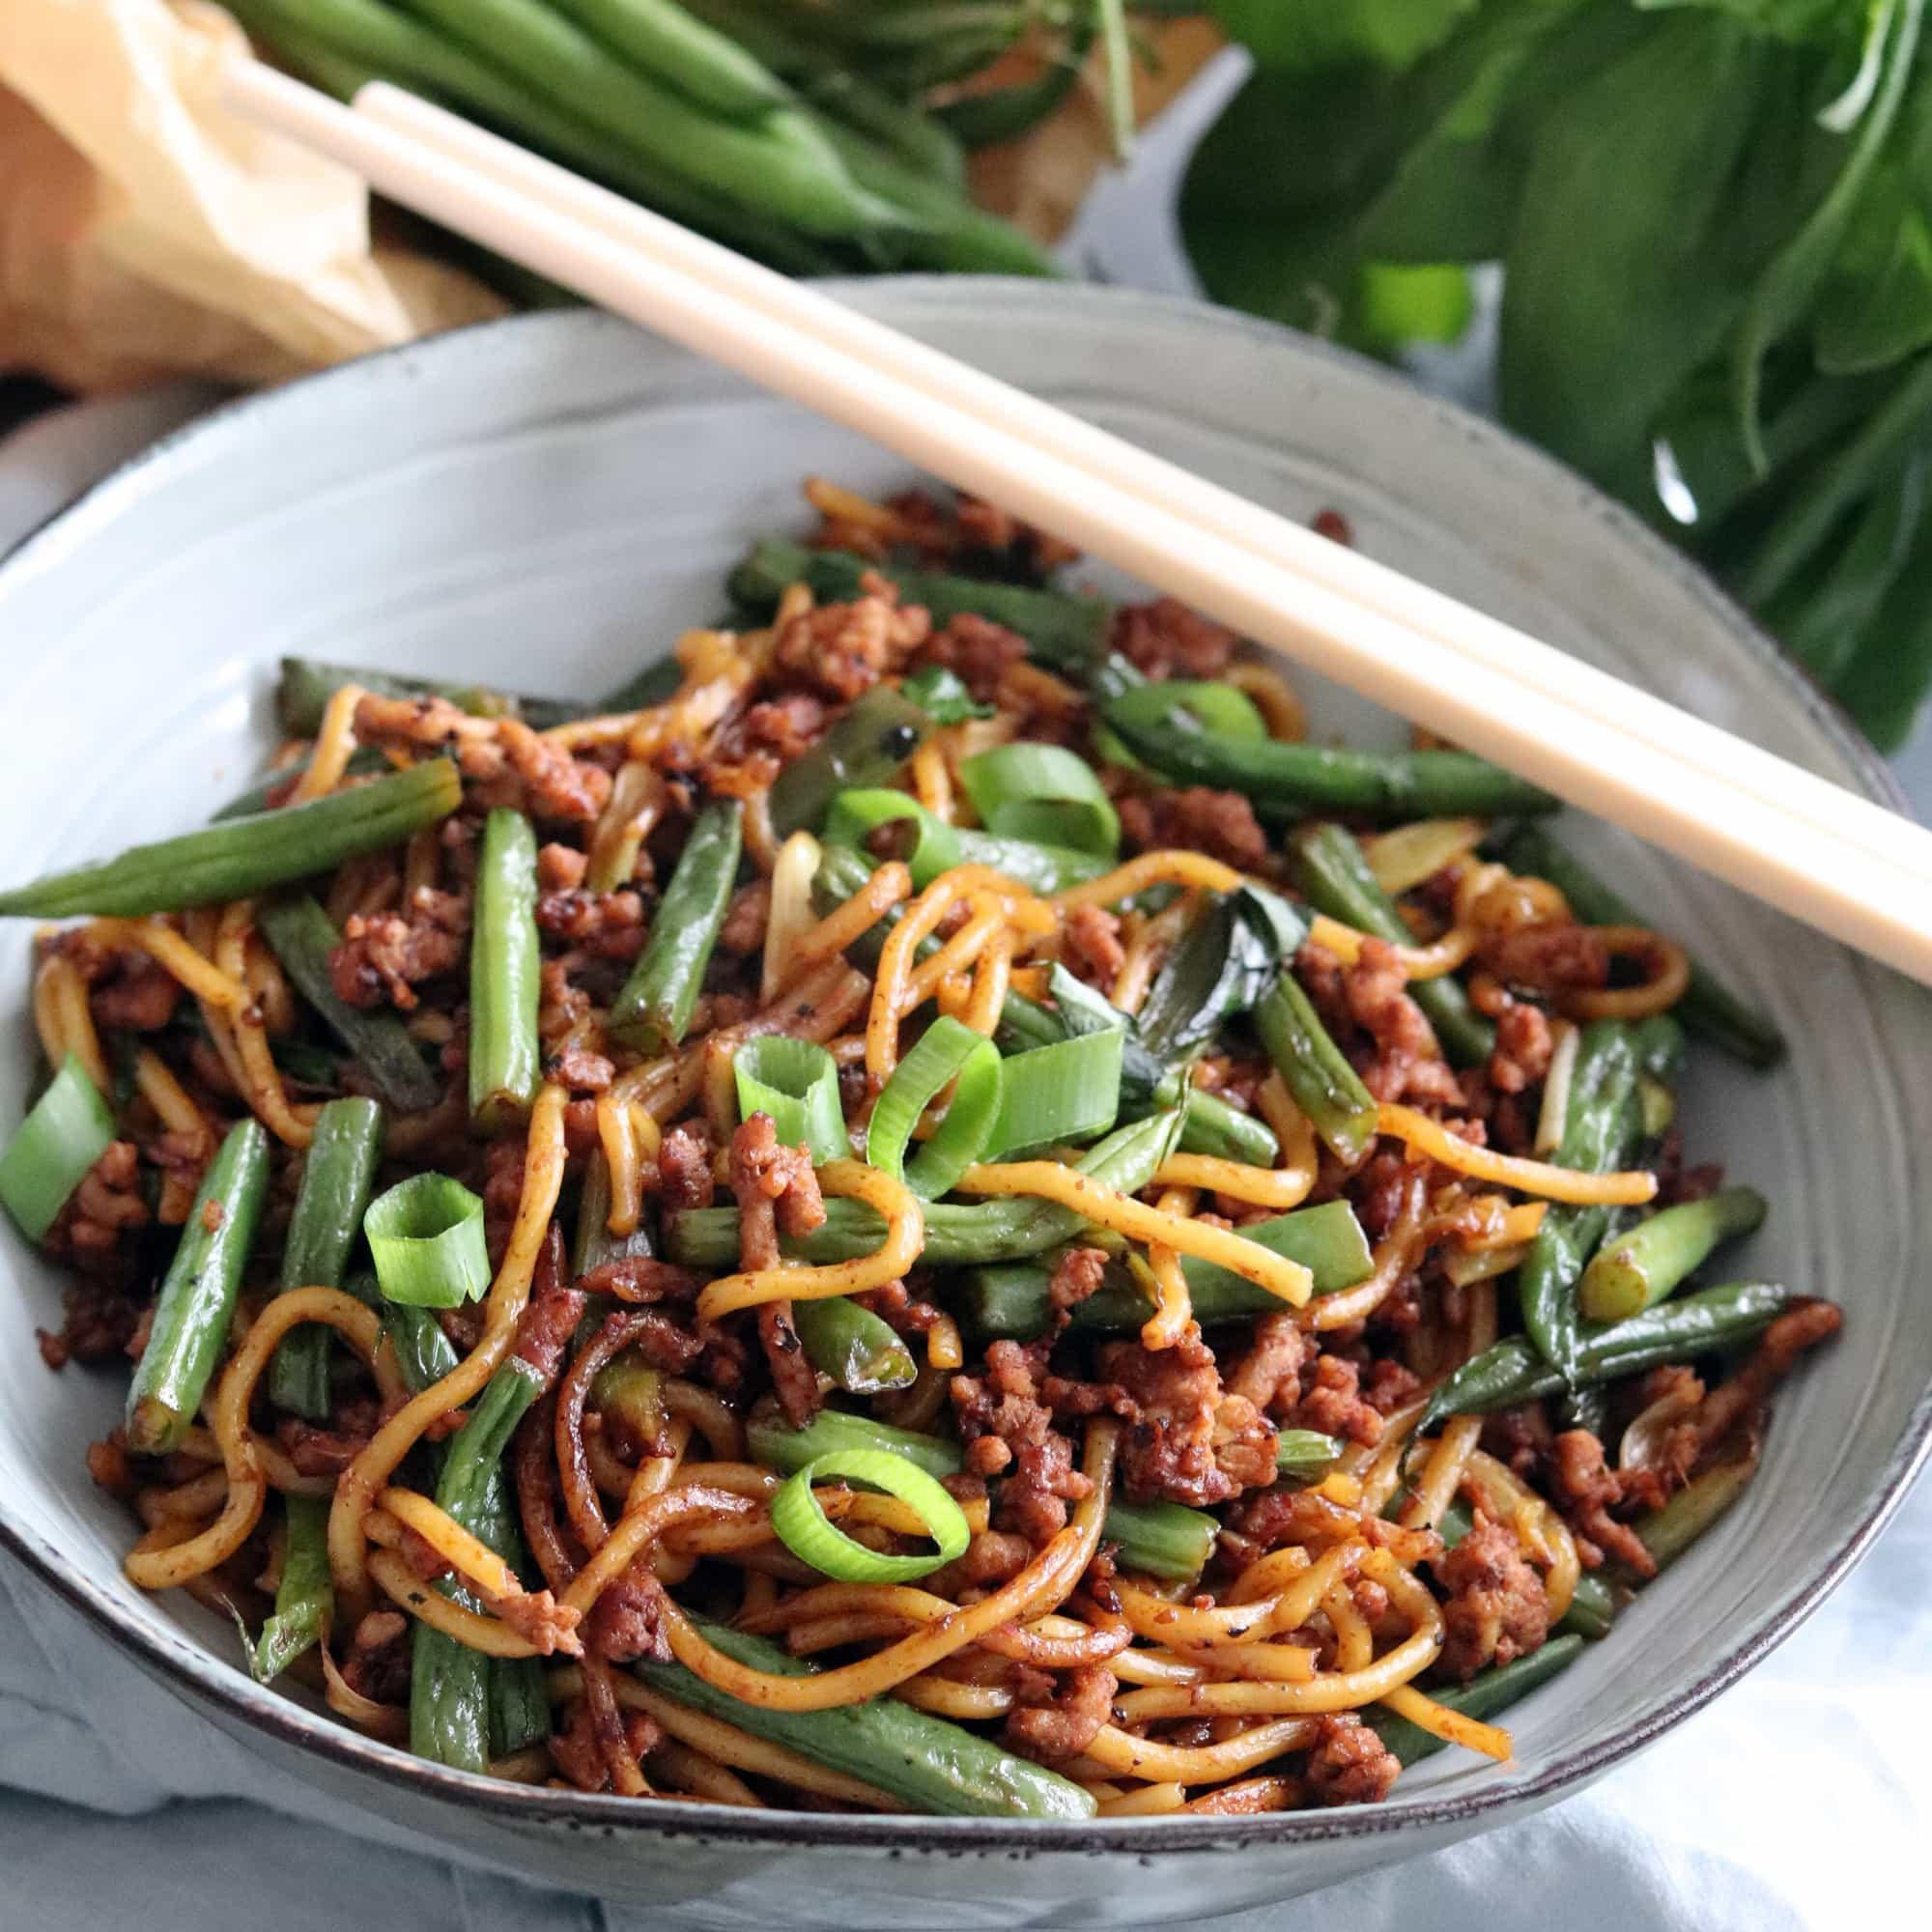 Pork & Green Bean Stir Fry